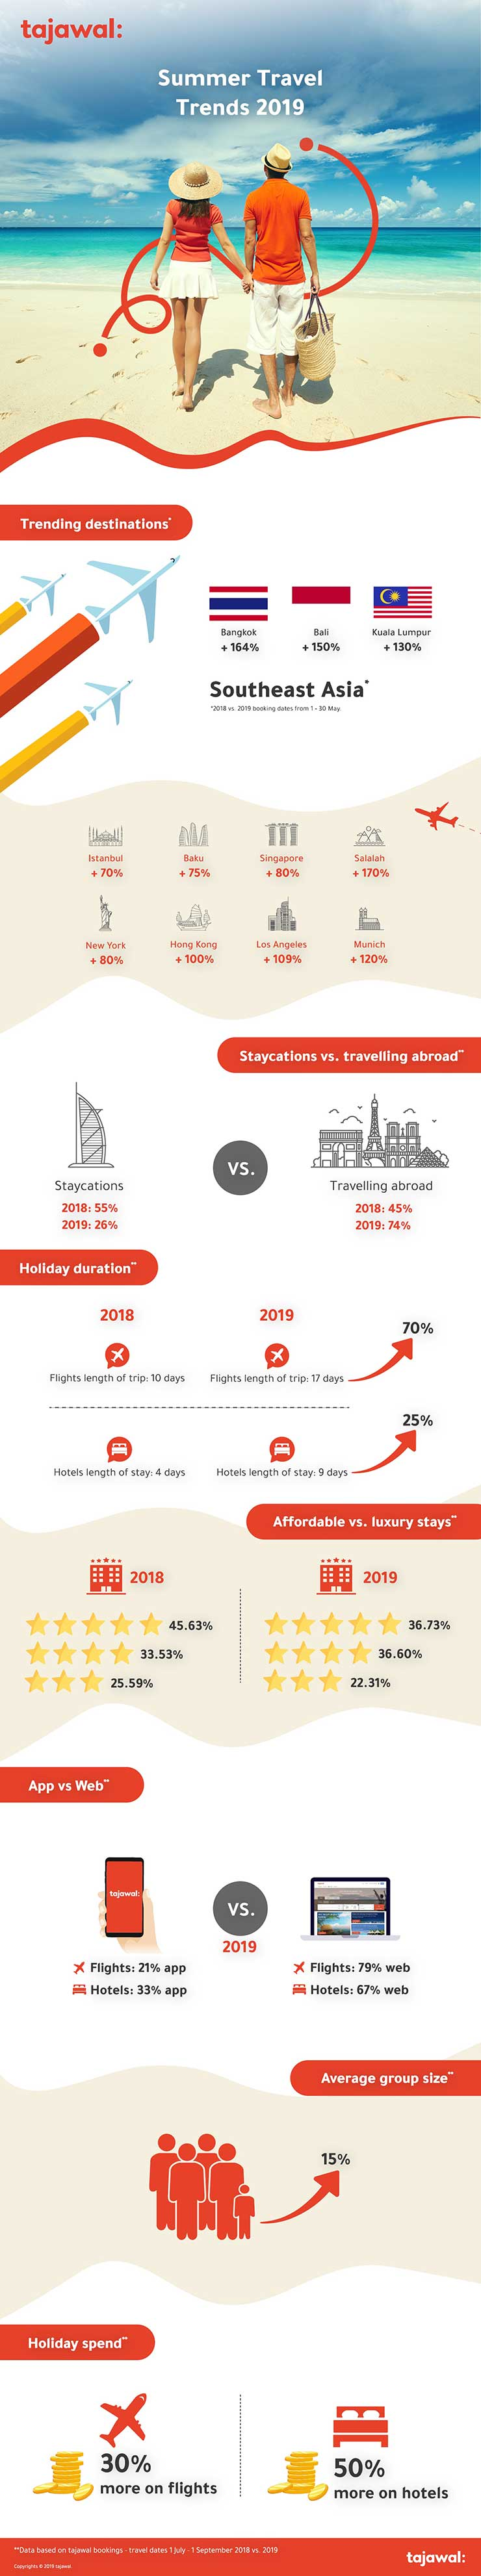 Tajawal - Summer Travel Trends Infographic